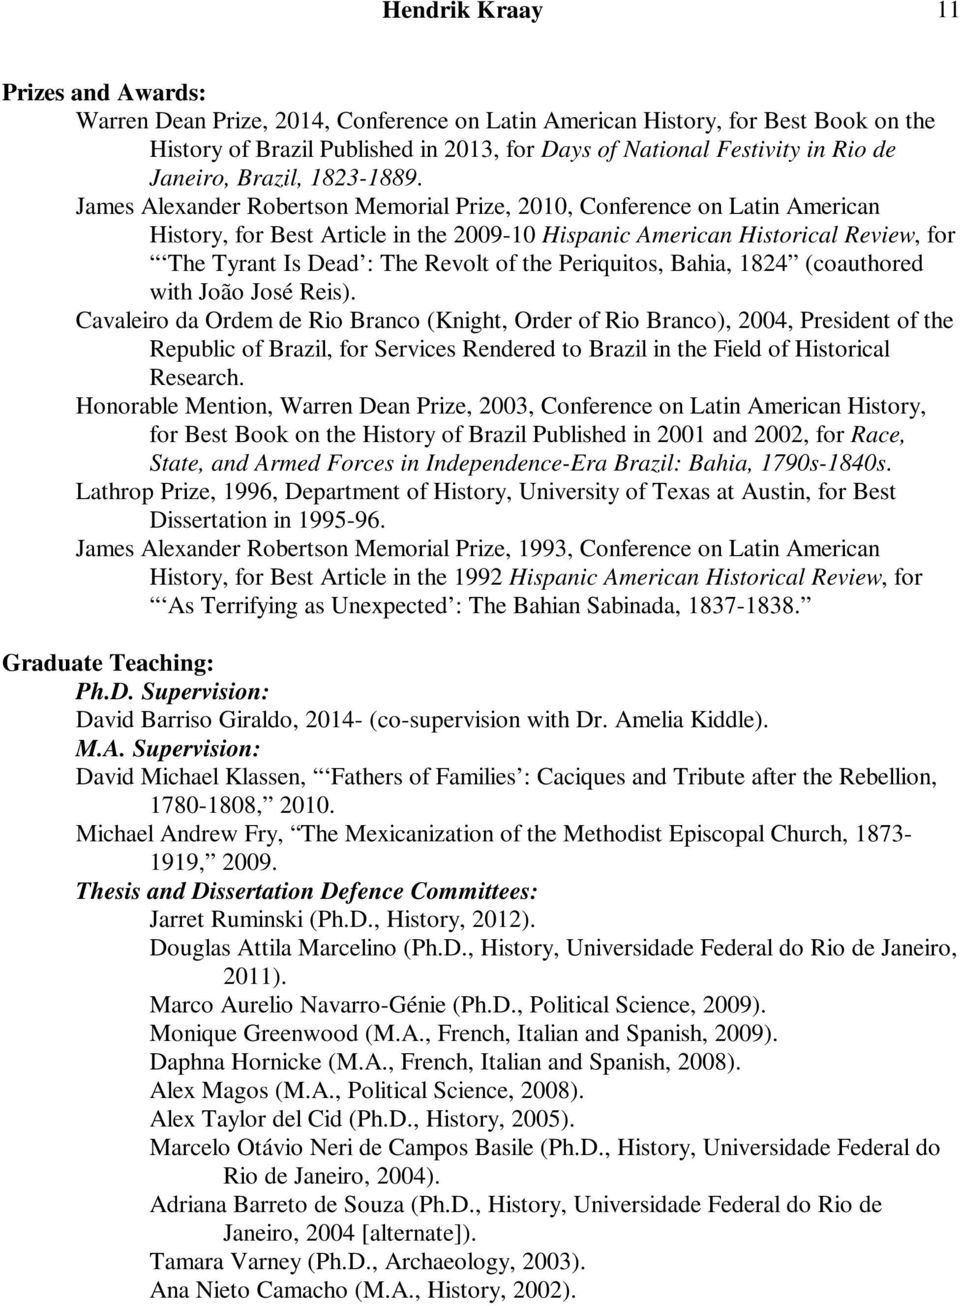 James Alexander Robertson Memorial Prize, 2010, Conference on Latin American History, for Best Article in the 2009-10 Hispanic American Historical Review, for The Tyrant Is Dead : The Revolt of the